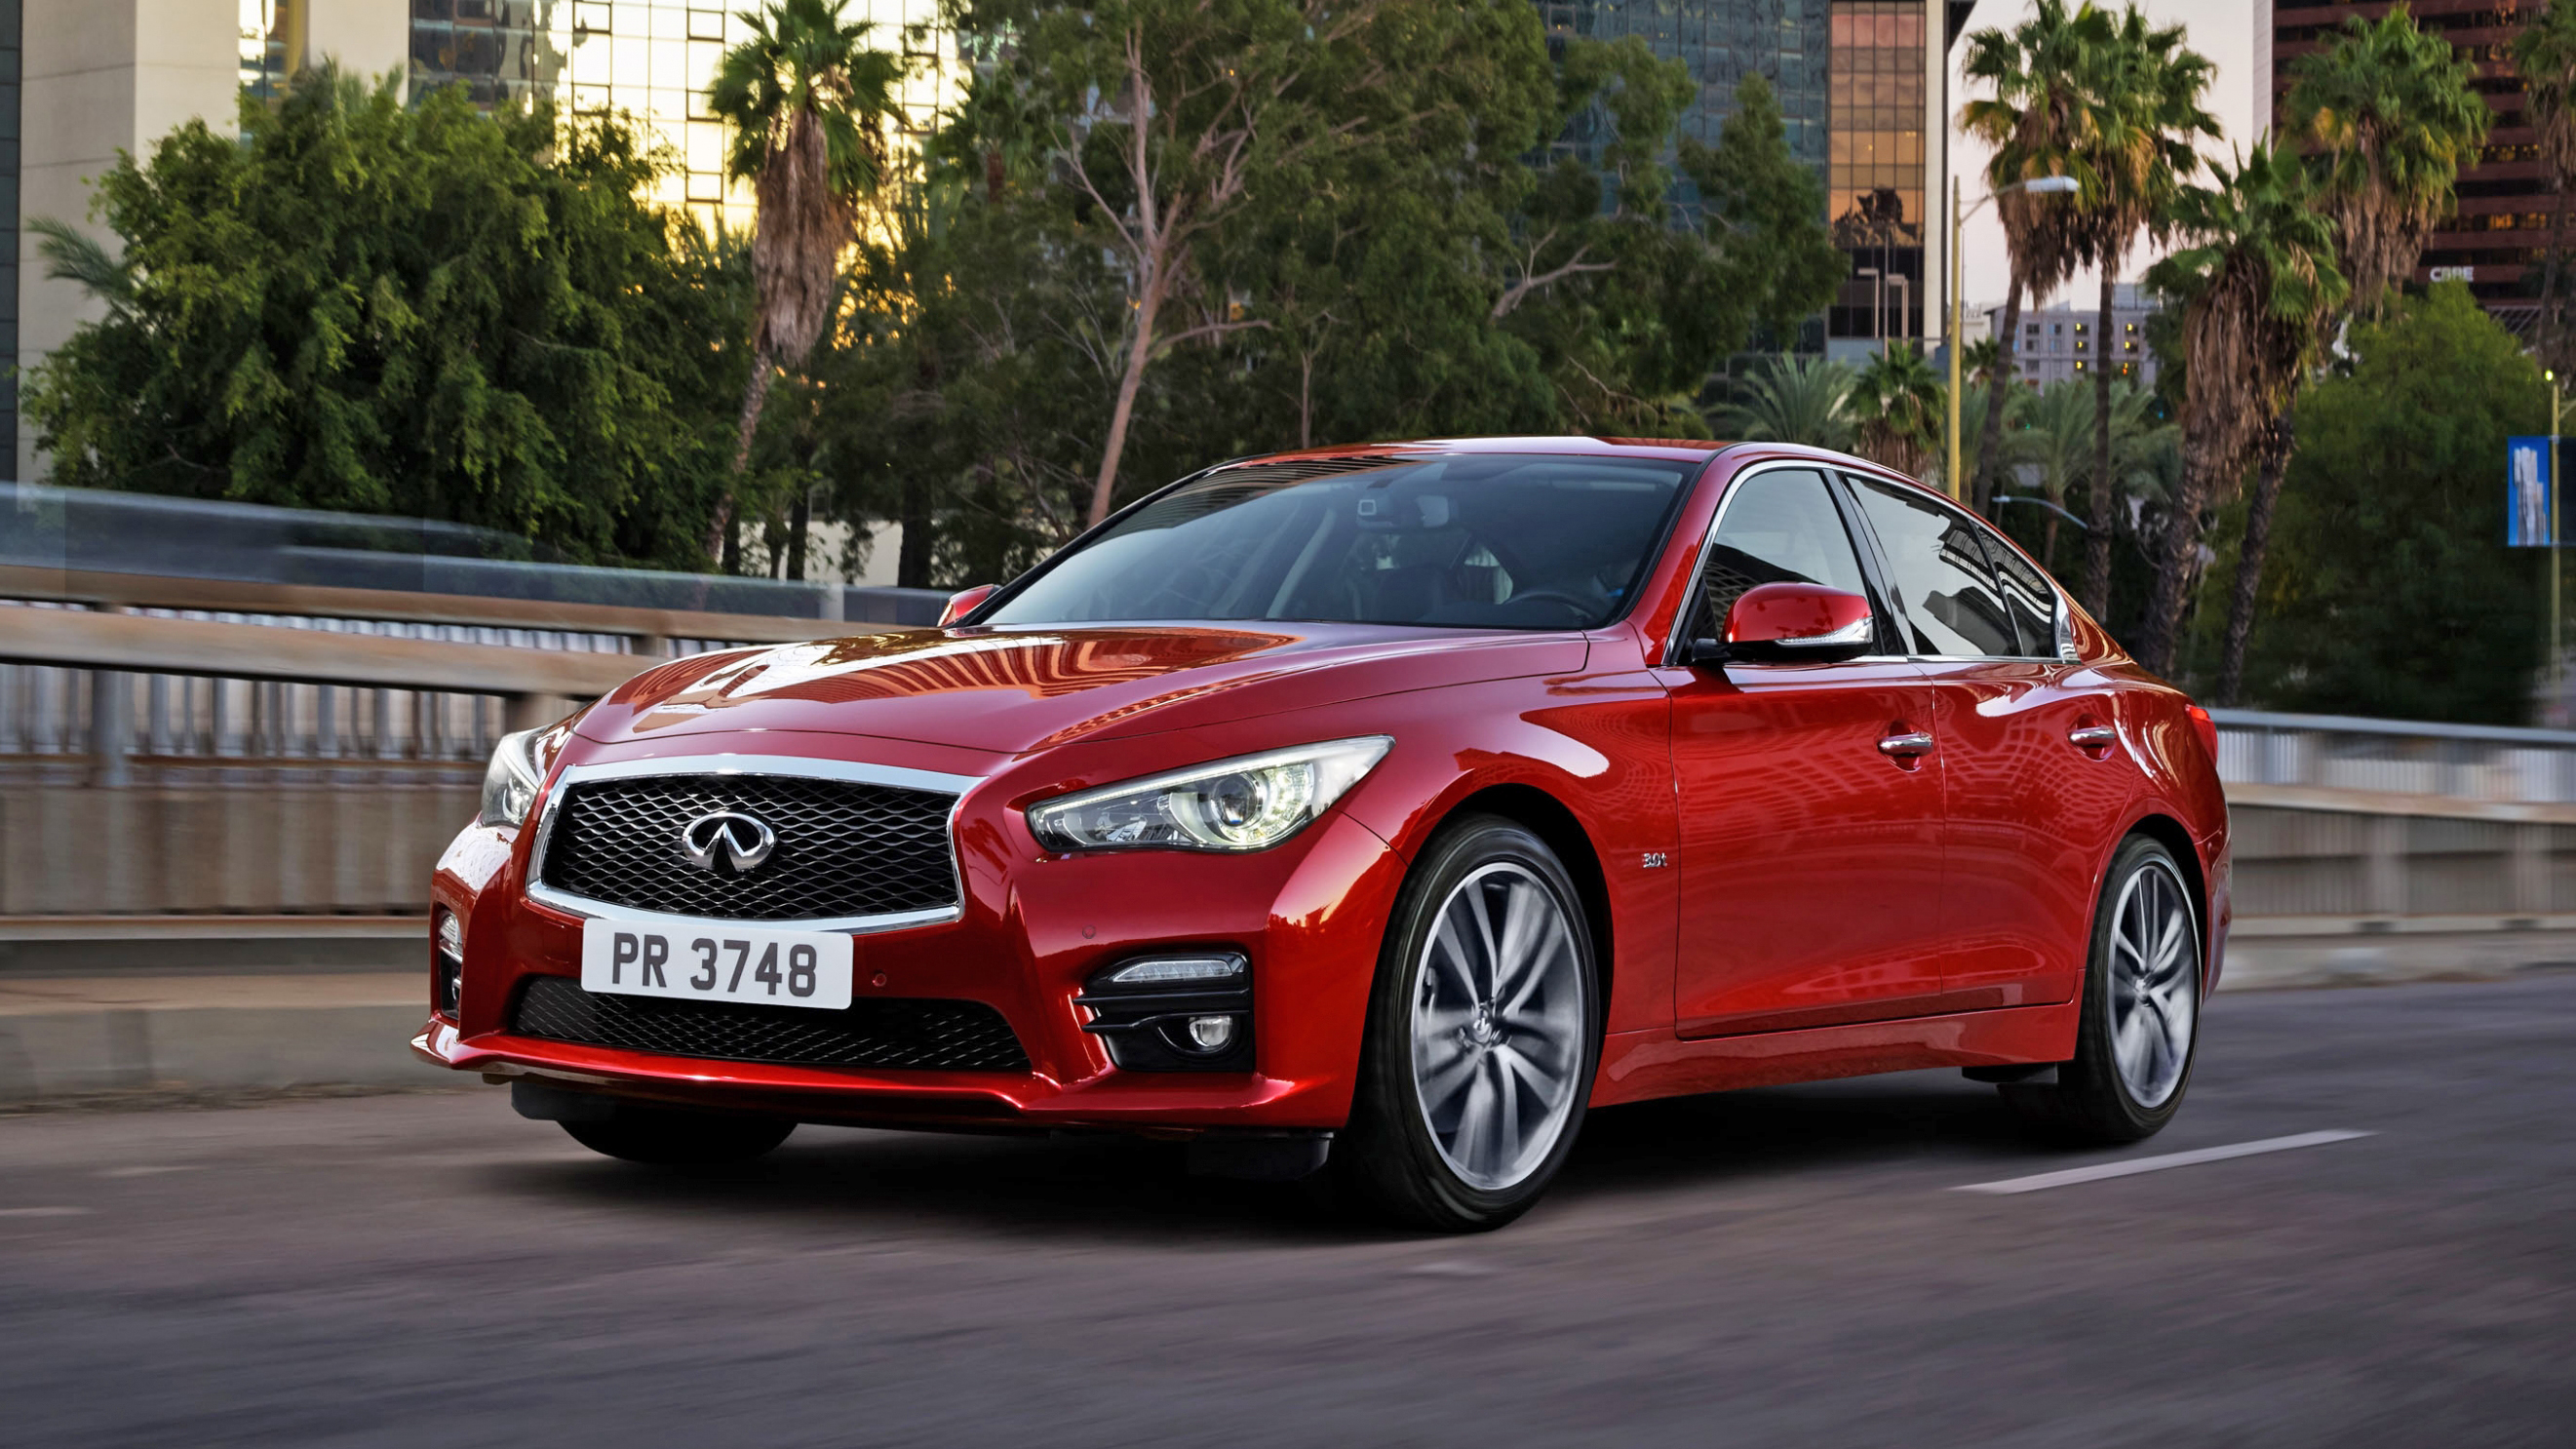 china in infiniti front turbocharged quarters capparella news infinity price cylinder three joseph gains four engine